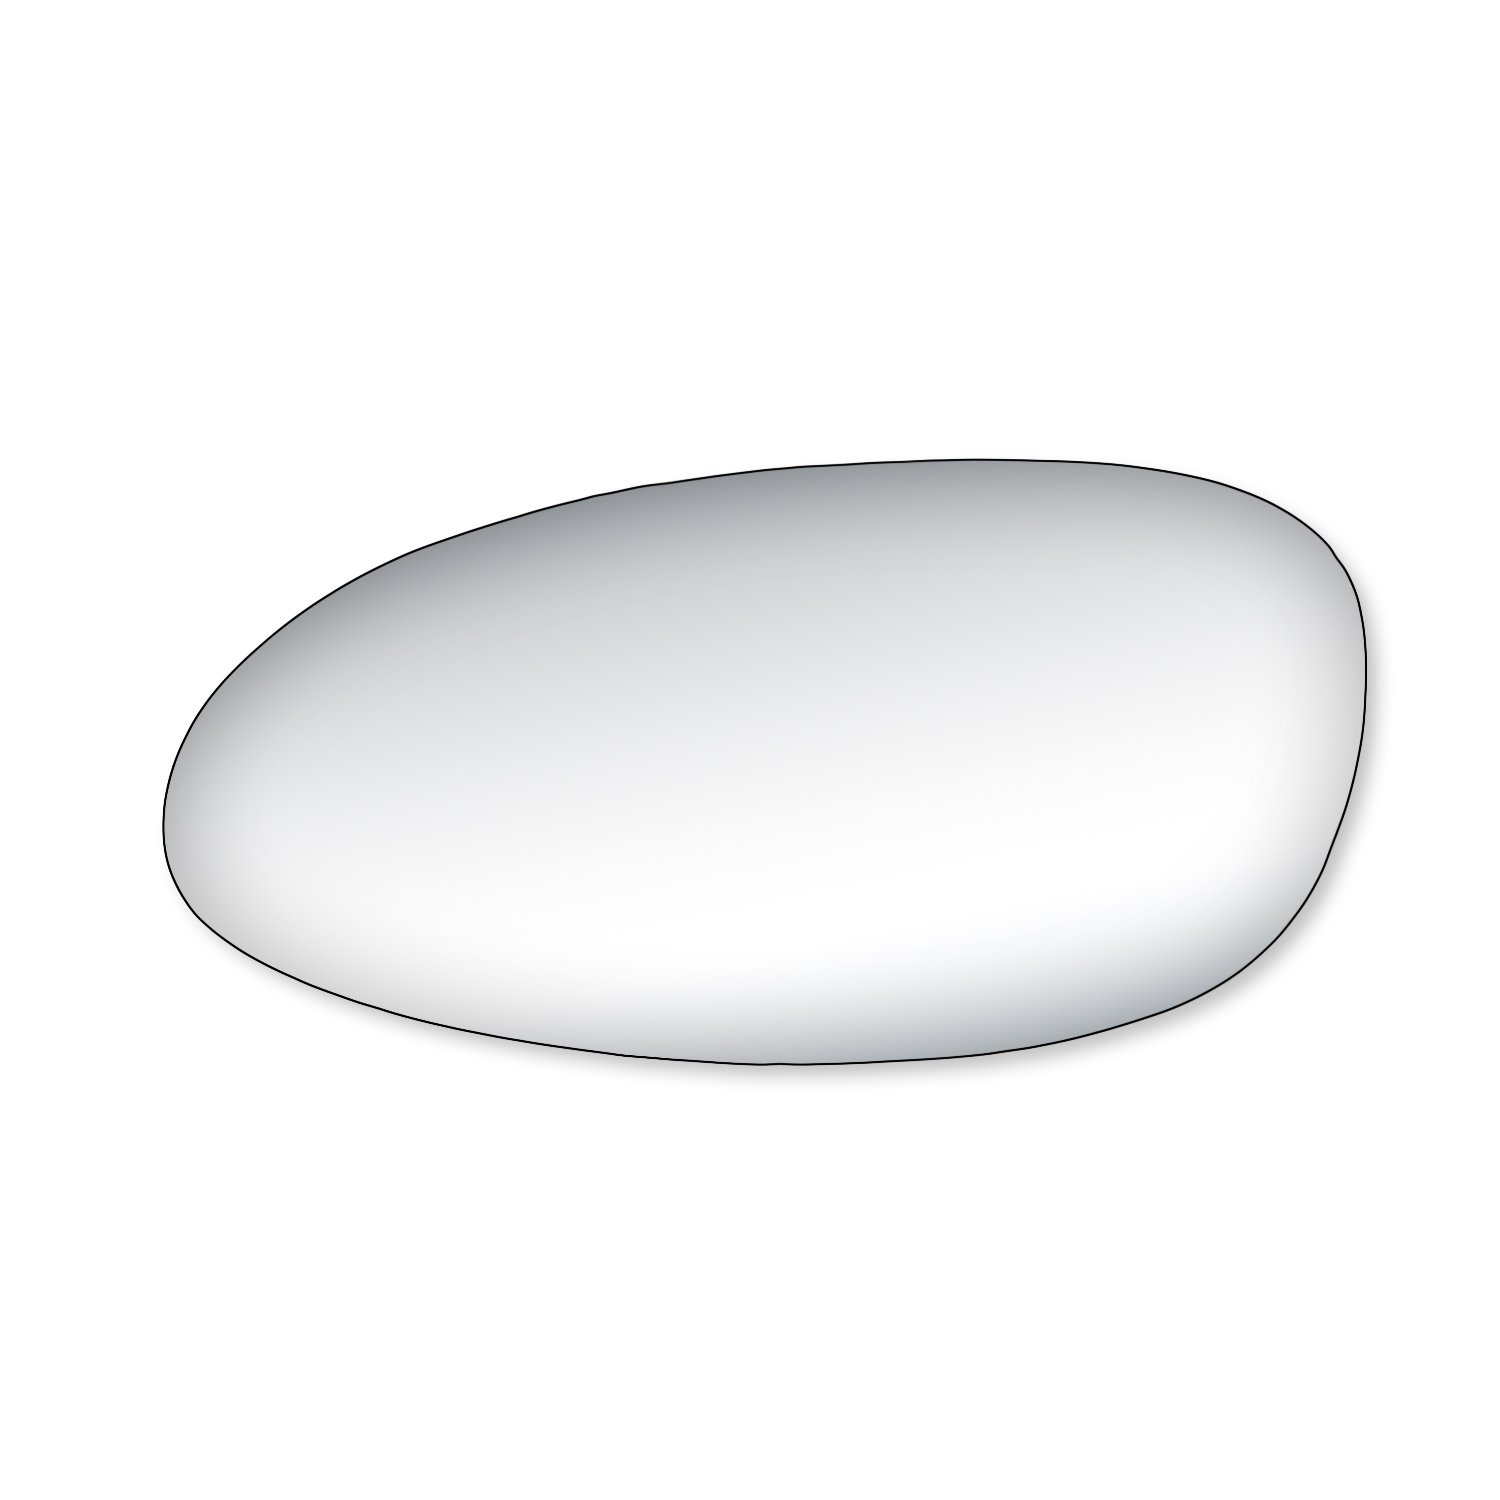 Fit System 99147 Buick Lacrosse Driver/Passenger Side Replacement Mirror Glass